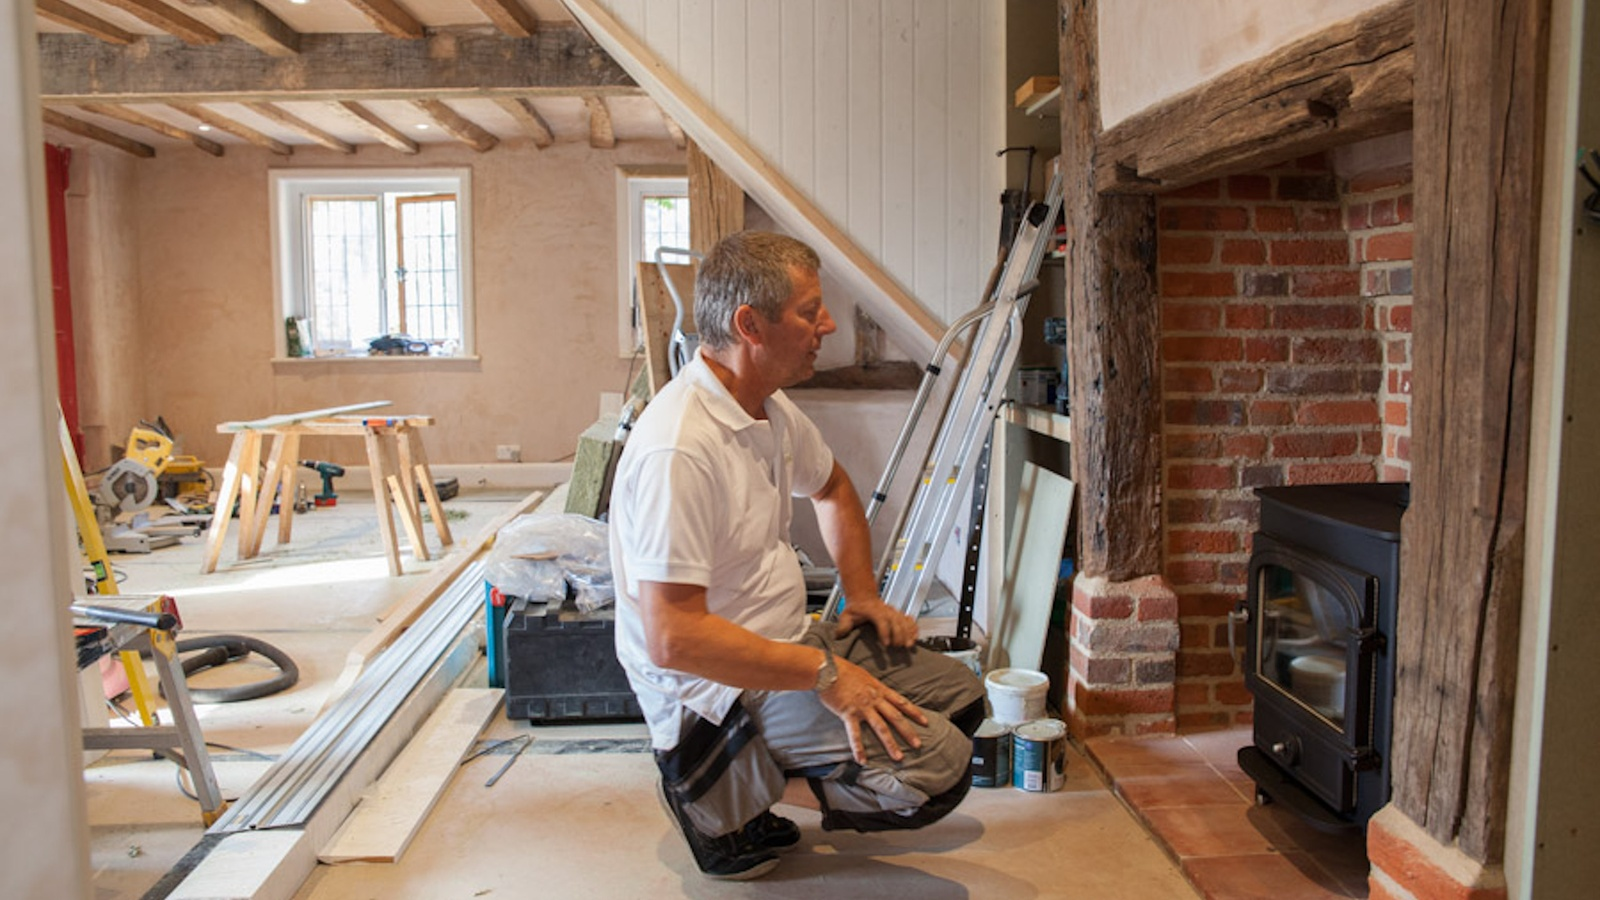 Installation a Clearview Vision 500 as part of a listed building renovation project